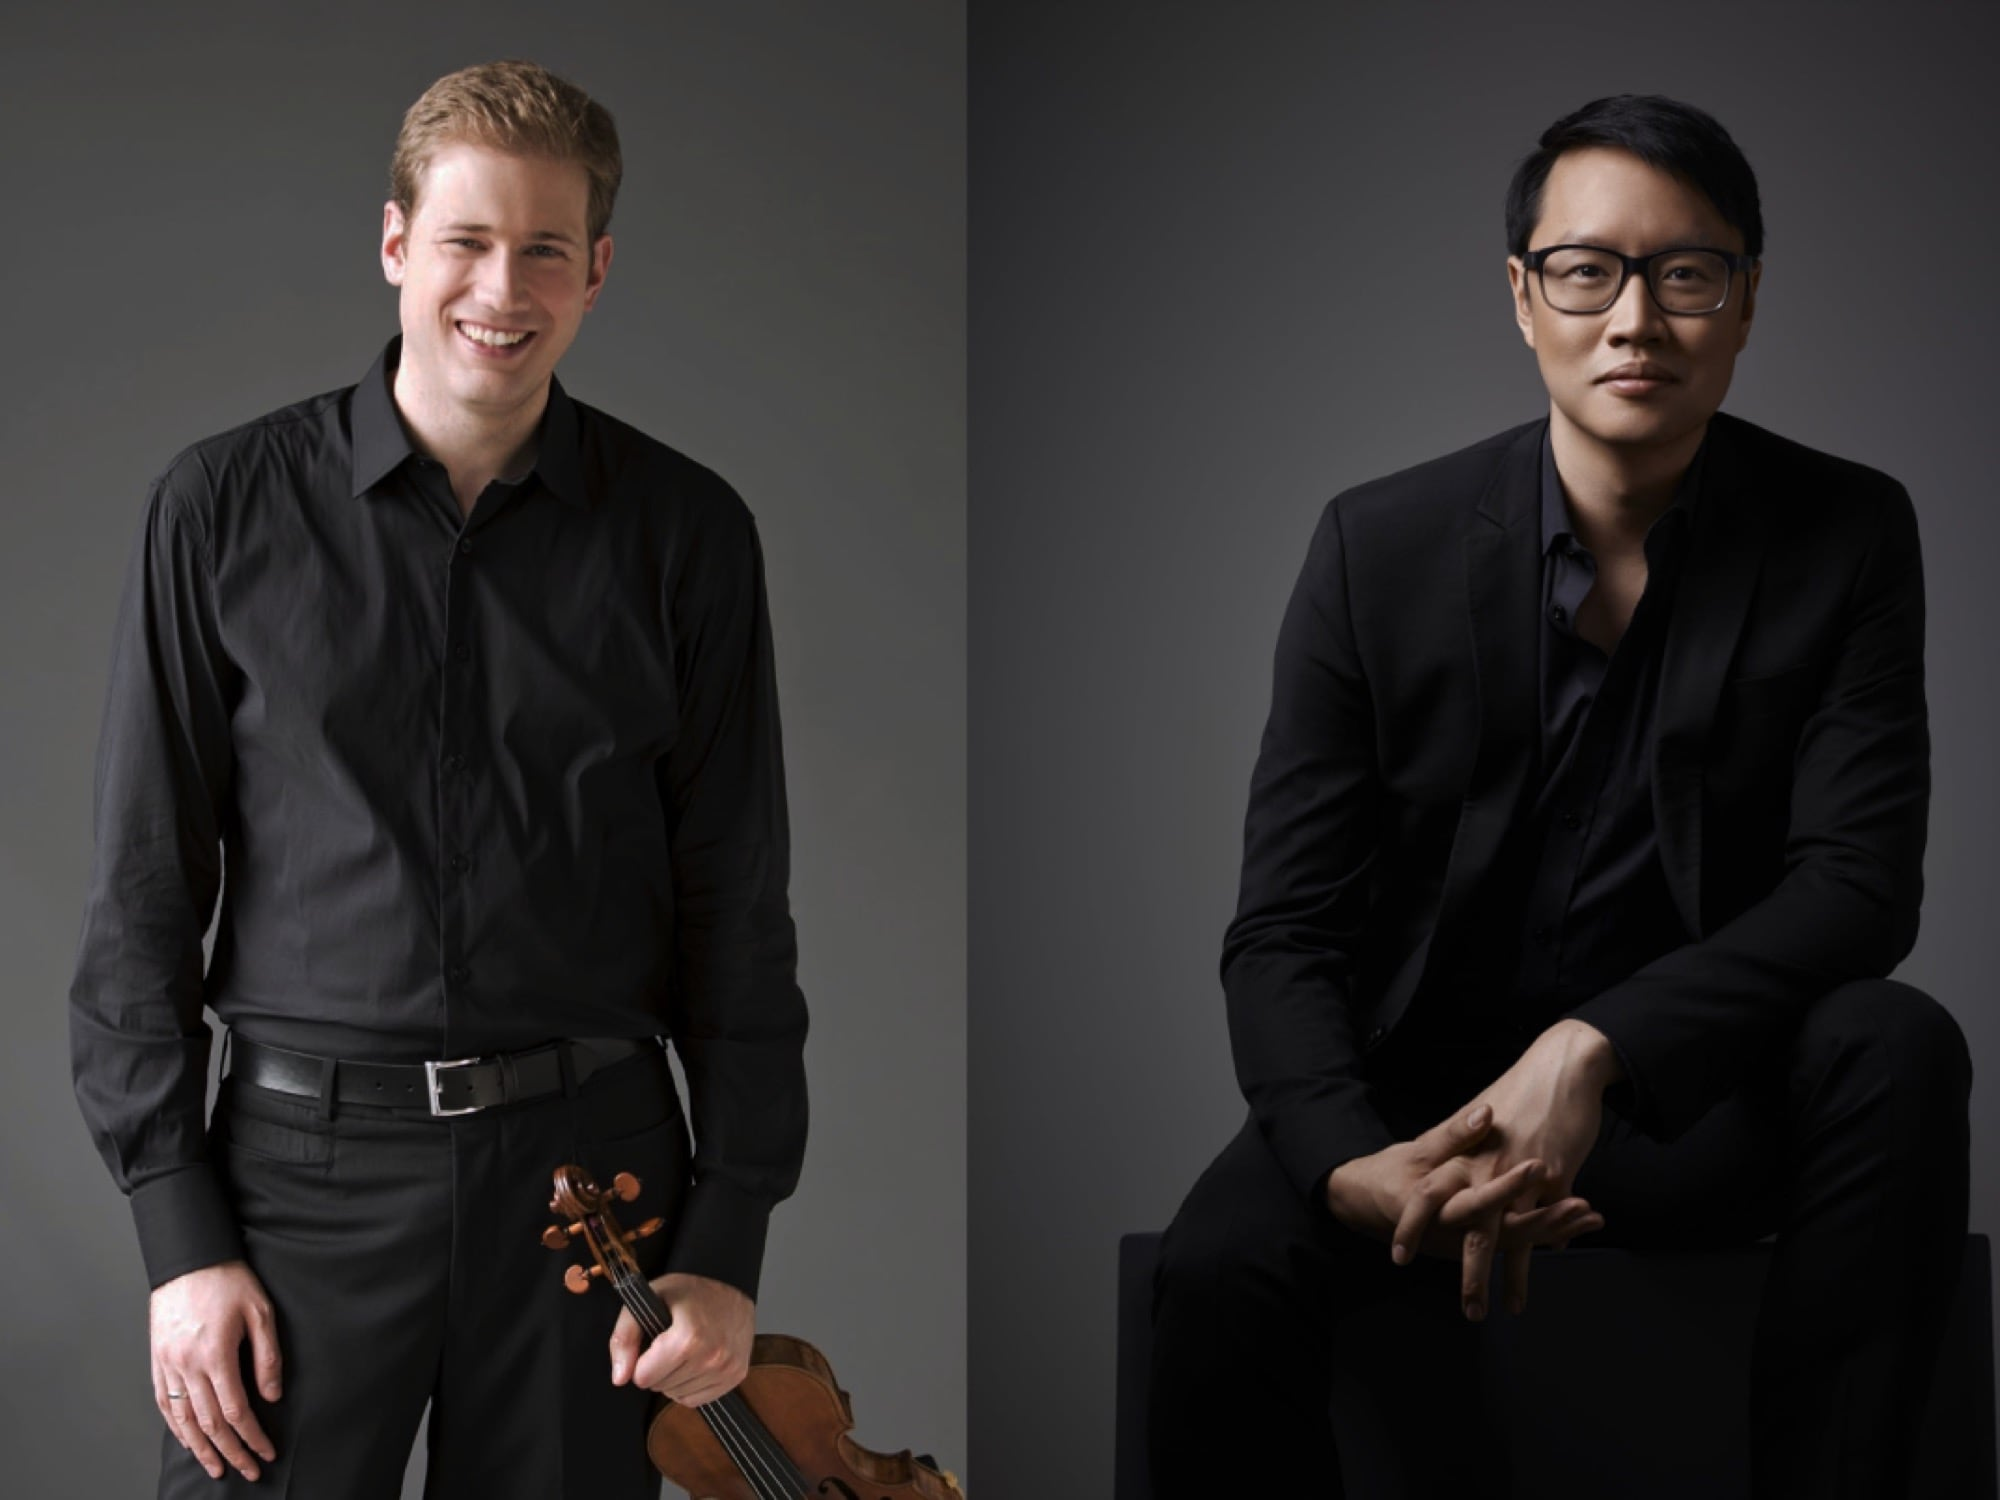 """A TRIBUTE TO YEHUDI MENUHIN Jonathan Crow, violinPhilip Chiu, piano - April 25, 2020 - 3pmToronto Symphony Orchestra Concertmaster and BC-born violinist Jonathan Crow and his recital partner, pianist Philip Chiu, present a powerful and moving tribute to one of the legendary superstar violinists of the 20th century and internationally-renowned humanitarian, Yehudi Menuhin (1916 – 1999).Menuhin filled concert halls around the world for decades. During WWII, he gave an astonishing 500 concerts for wounded servicemen, Allied troops, relief organizations, and at liberated concentration camps, risking his own life on many occasions to bring joy and hope to others through music.In this very personal concert, Crow and Chiu perform some of the pieces that Menuhin brought to wartime Europe, including Beethoven's Violin Sonata No. 9 in A Major, Op. 47 (Kreutzer Sonata), Corelli's La Folia, Ravel's fiery Tzigane and showpieces of Fritz Kreisler. Menuhin himself was the conductor when Jonathan made his concerto debut with Victoria Symphony Orchestra.""""Both pieces show off everything a violinist can do, and both Crow and Chiu did so with pose and polish.""""- MUSICAL TORONTO"""